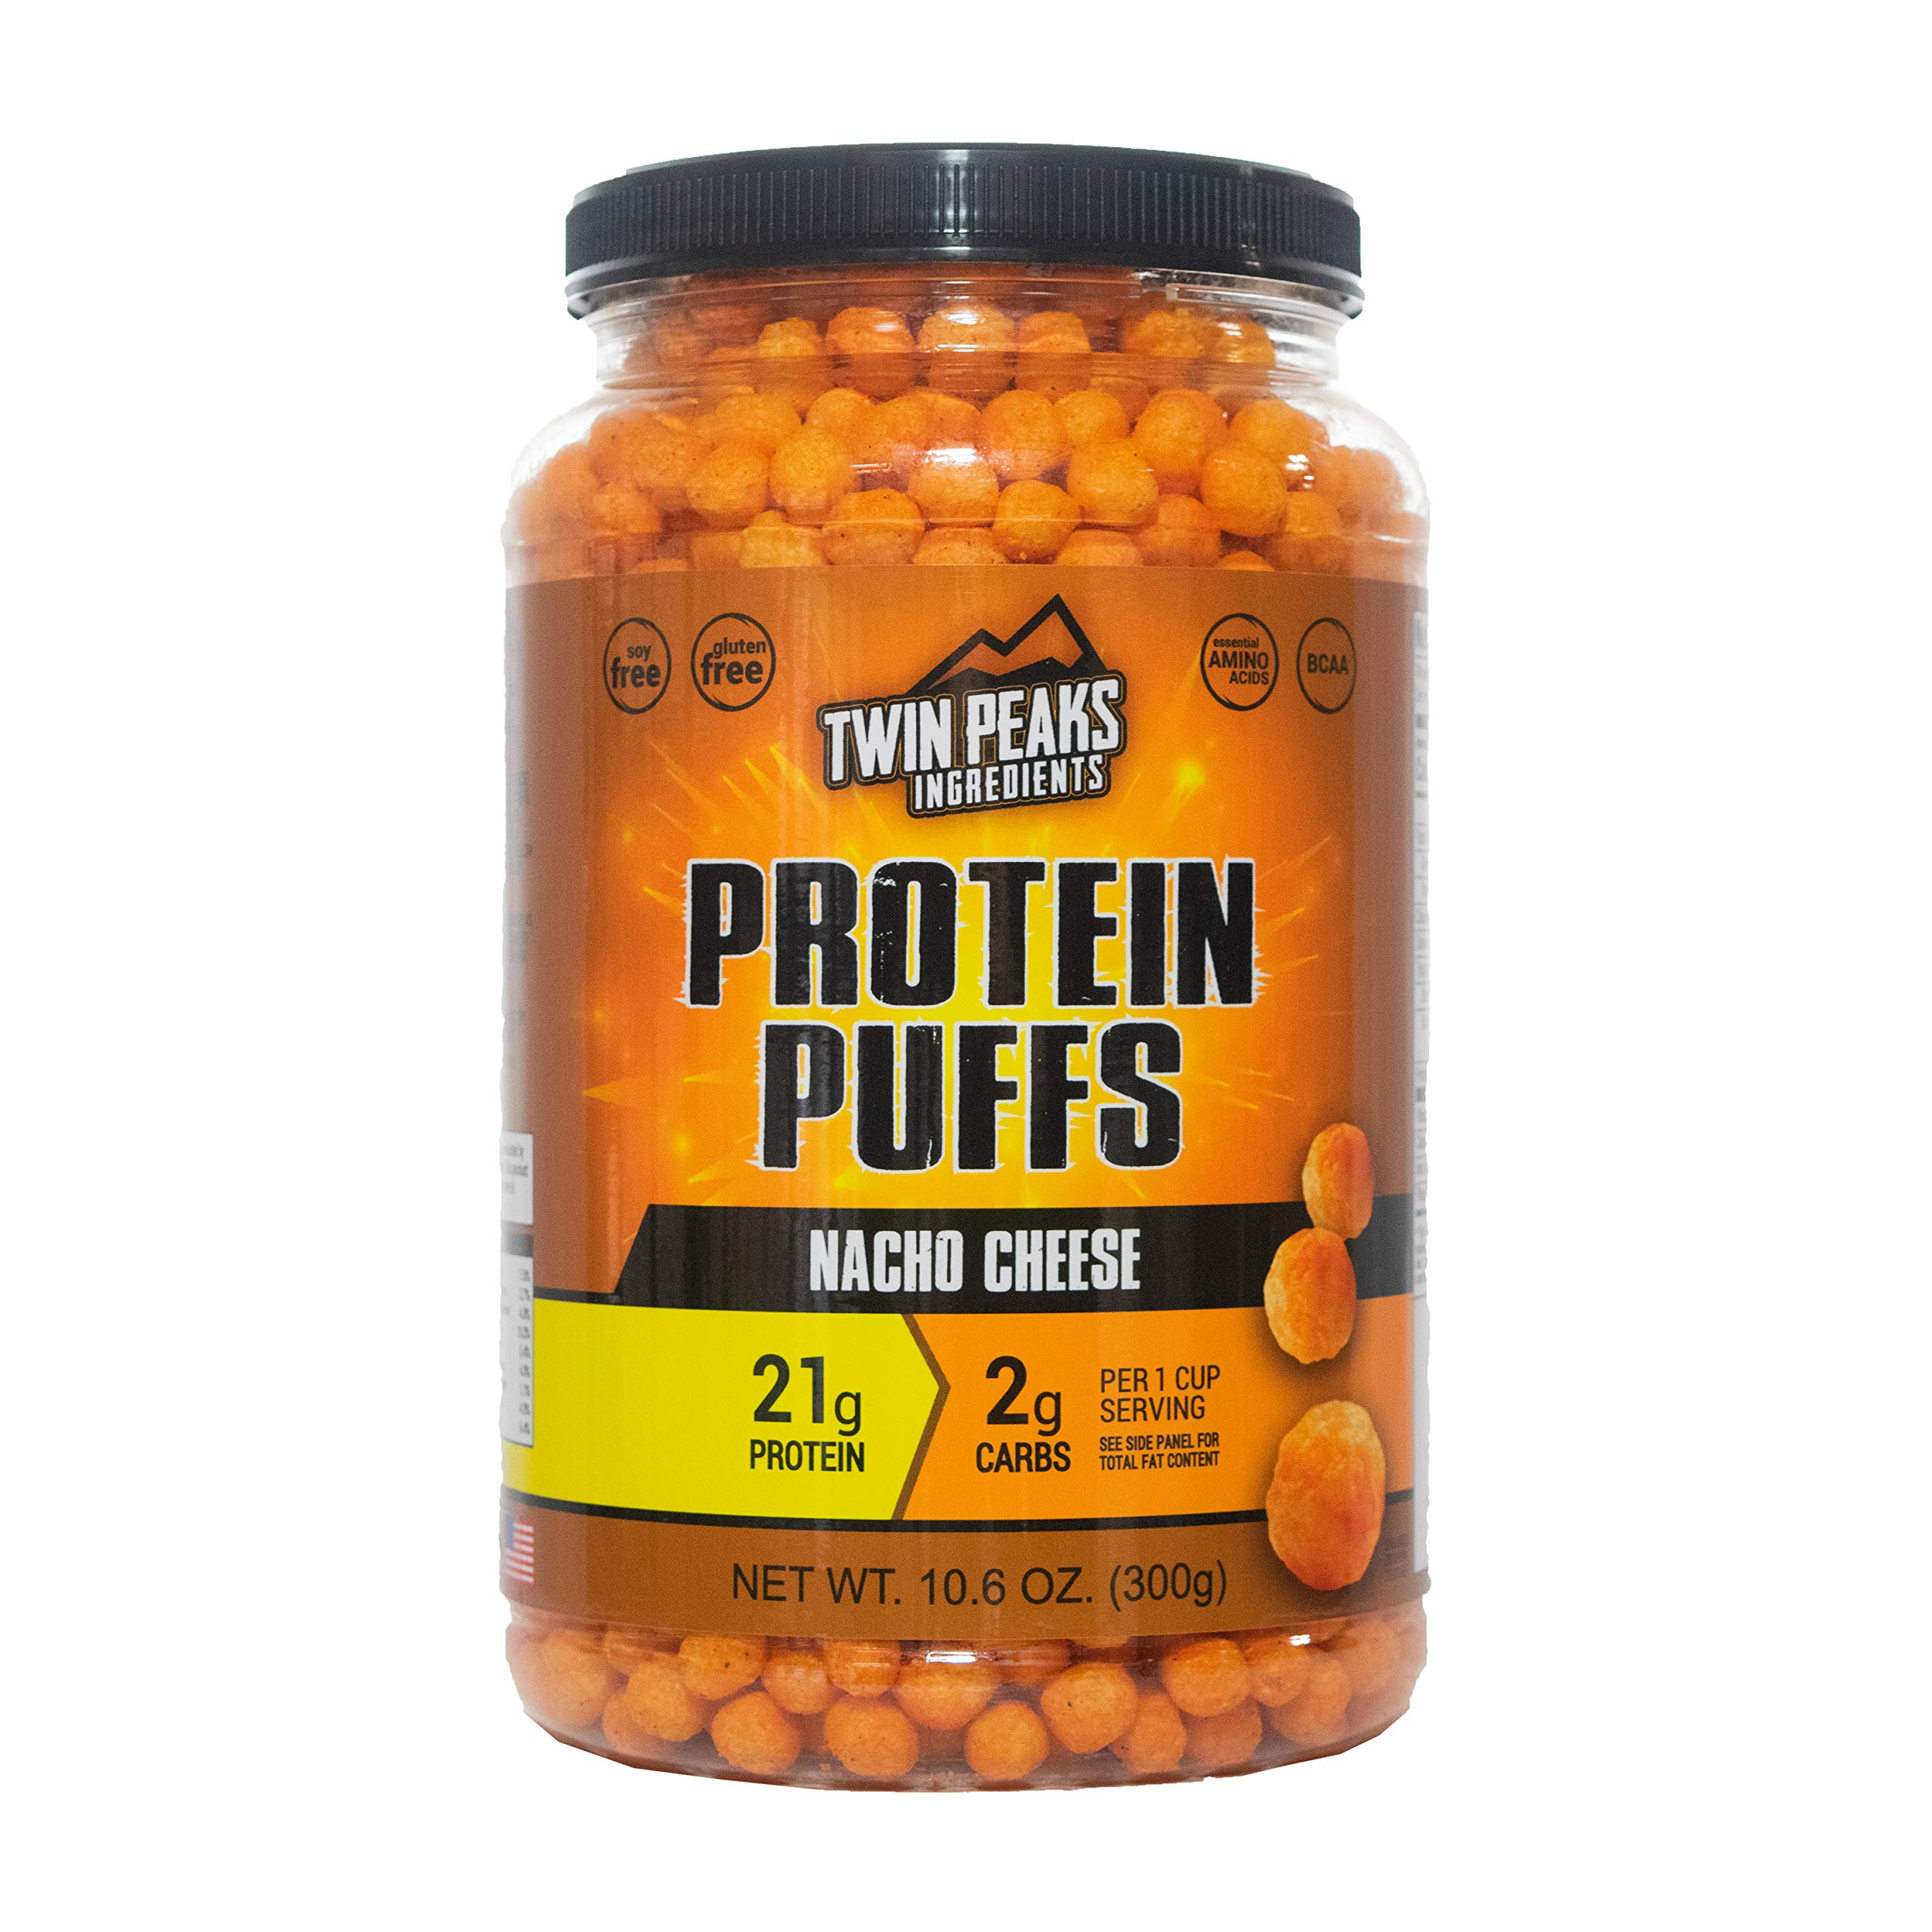 Twin Peaks Low Carb, Keto Friendly Protein Puffs, Nacho Cheese (300g, 21g Protein, 2g Carbs) by TWIN PEAKS INGREDIENTS